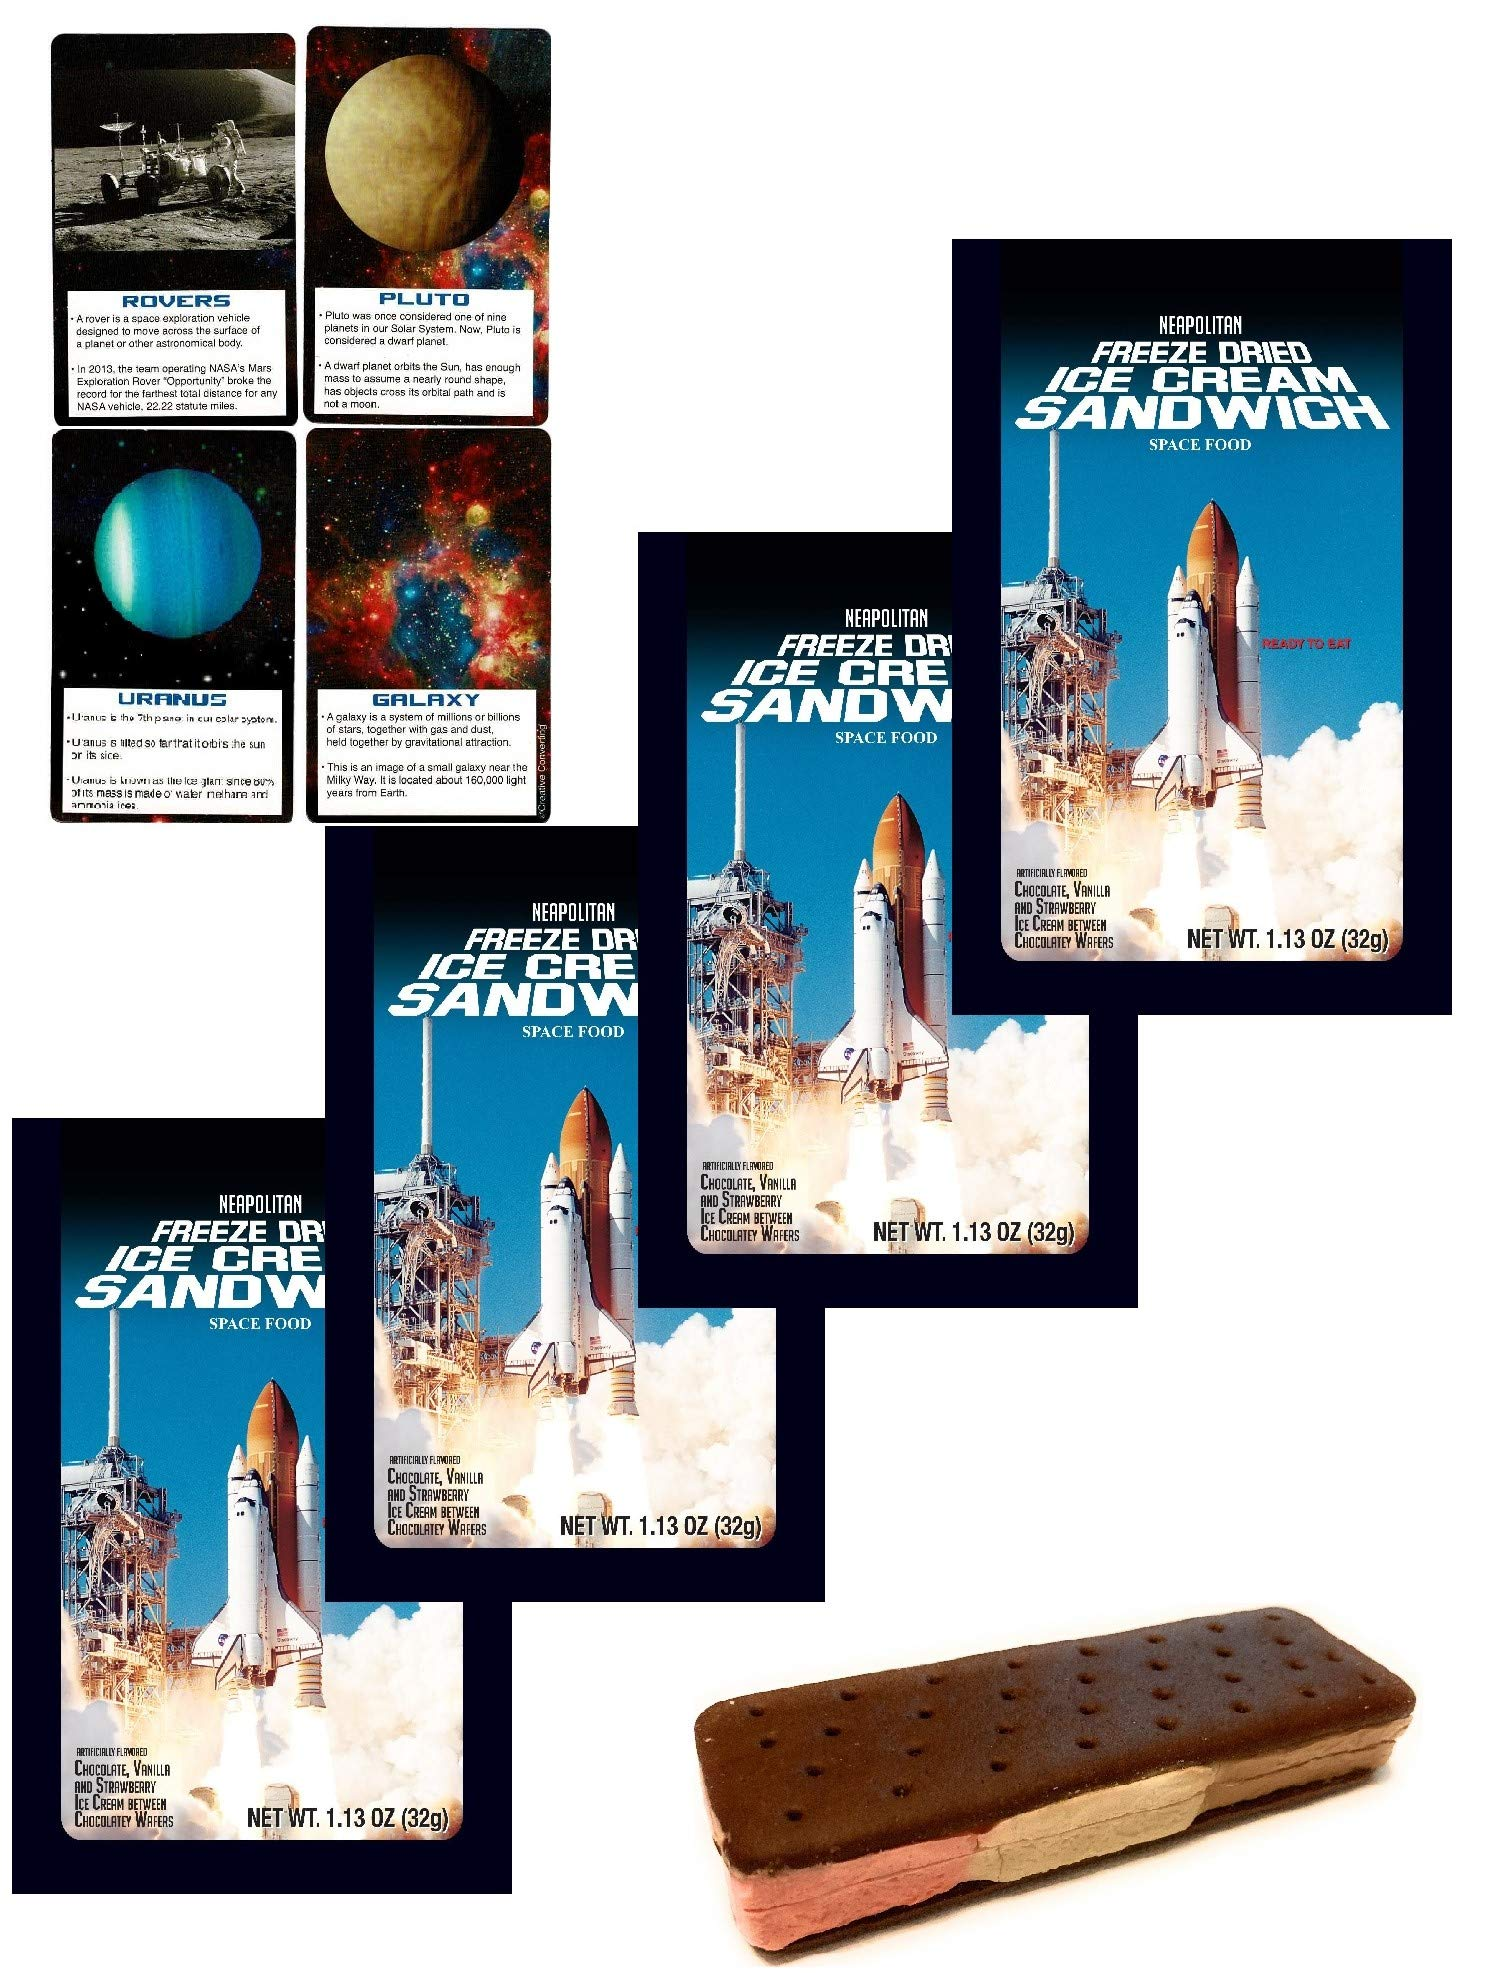 Astronaut Ice Cream Freeze Dried Neapolitan Sandwich (Chocolate-Vanilla-Strawberry) Astronaut Food & Space Fact Card Party Bundle - 4 Pack